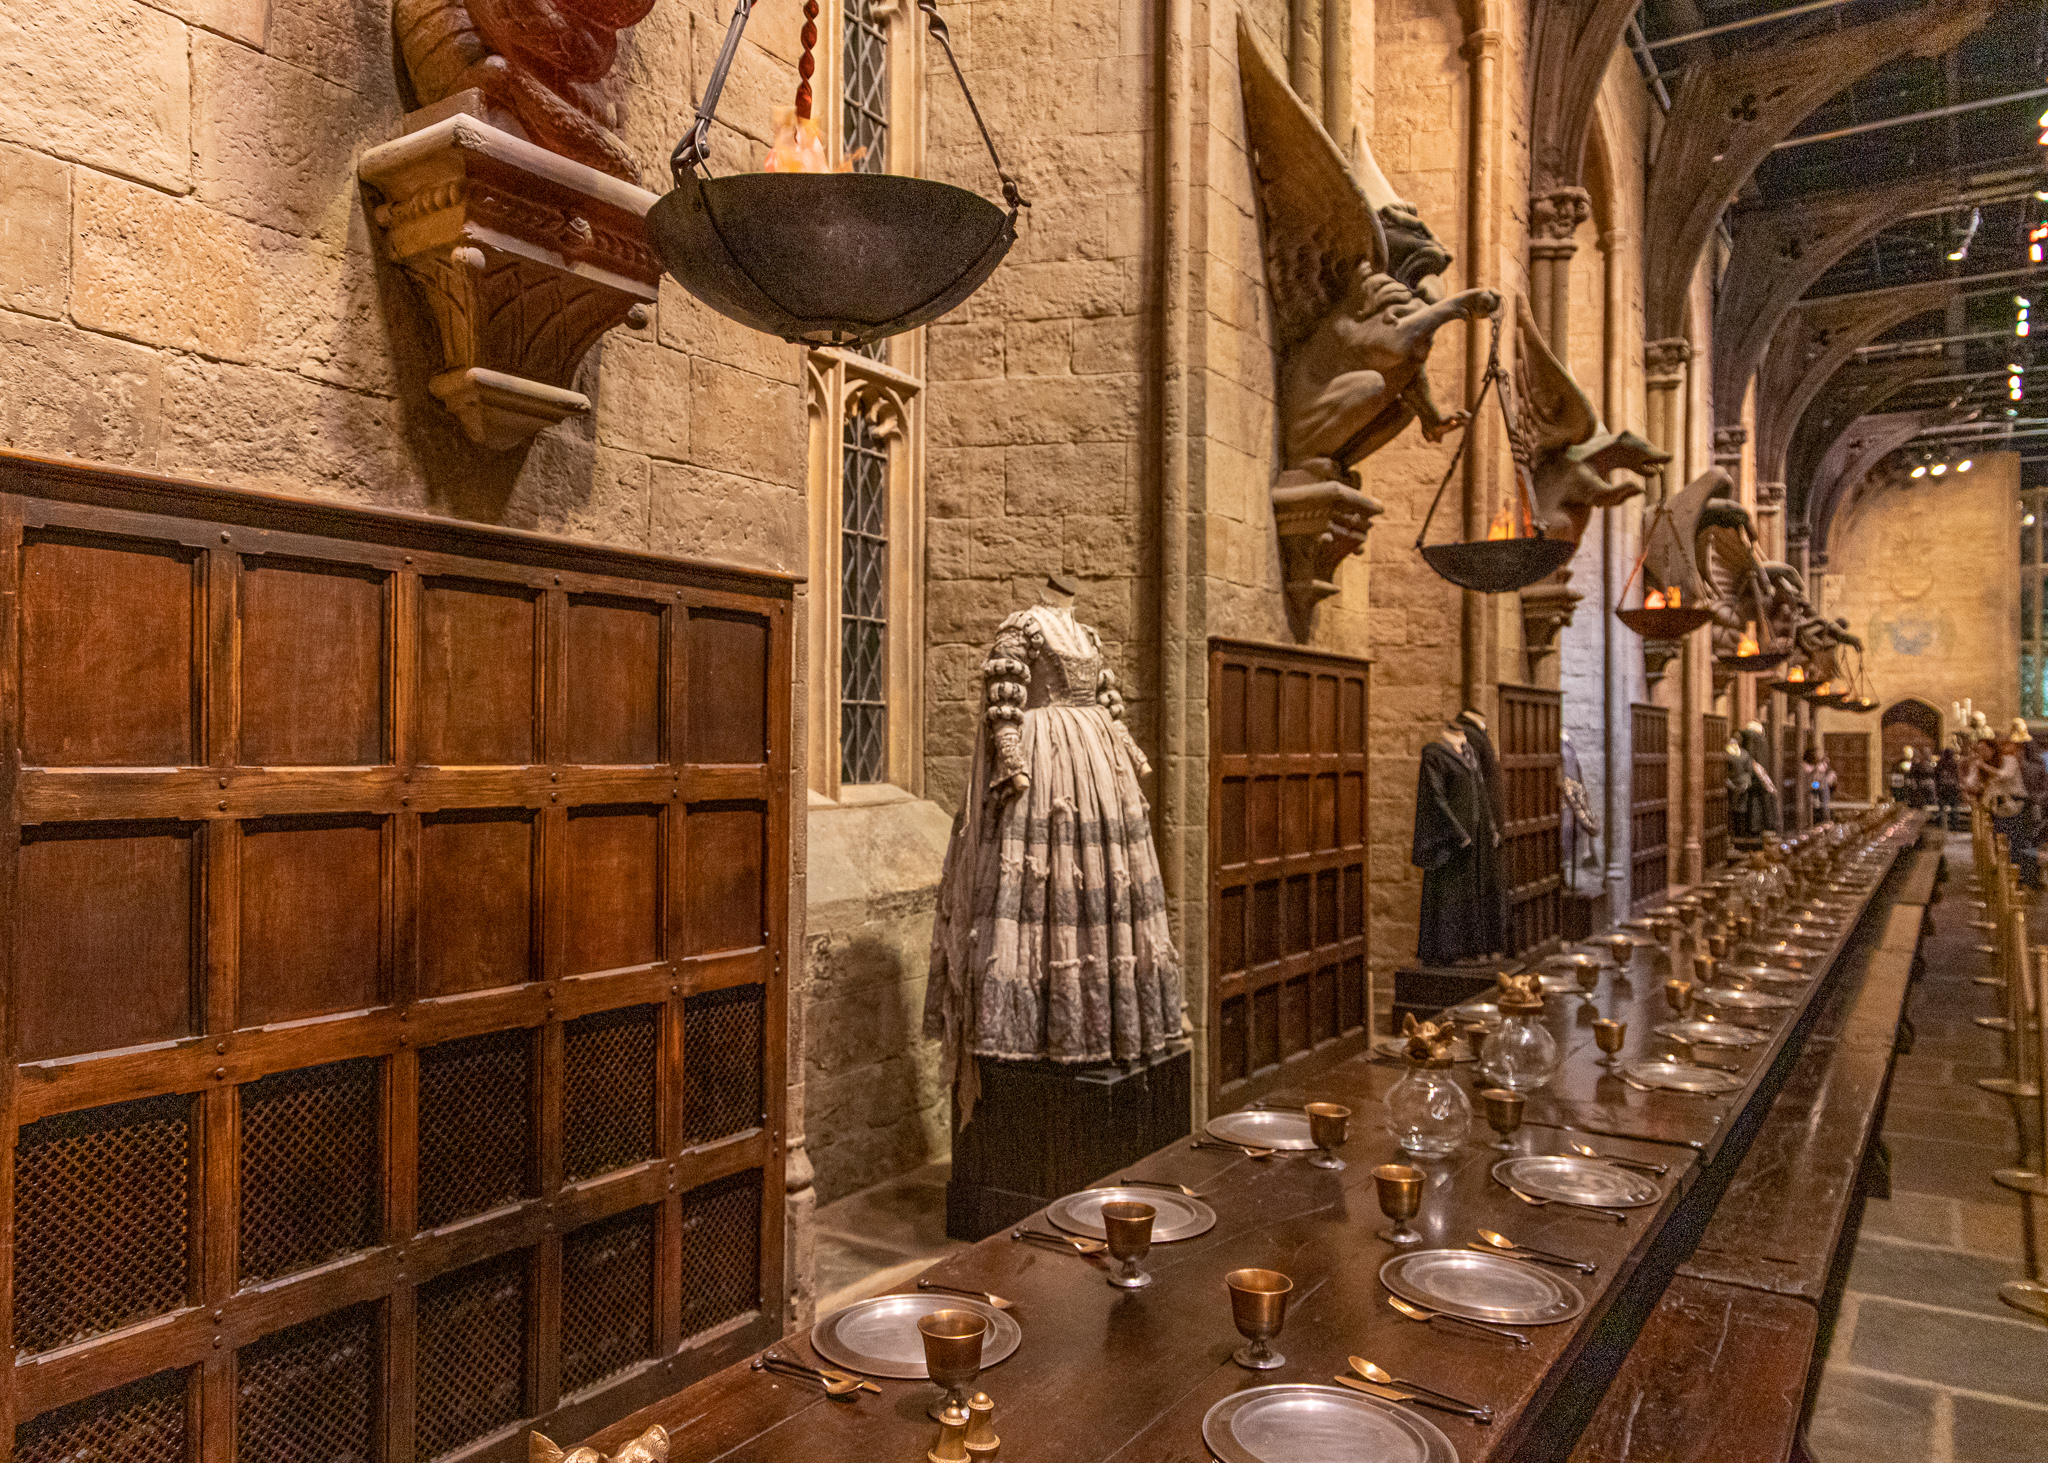 One of the Great Hall's feasting tables, unfortunately without materialising food